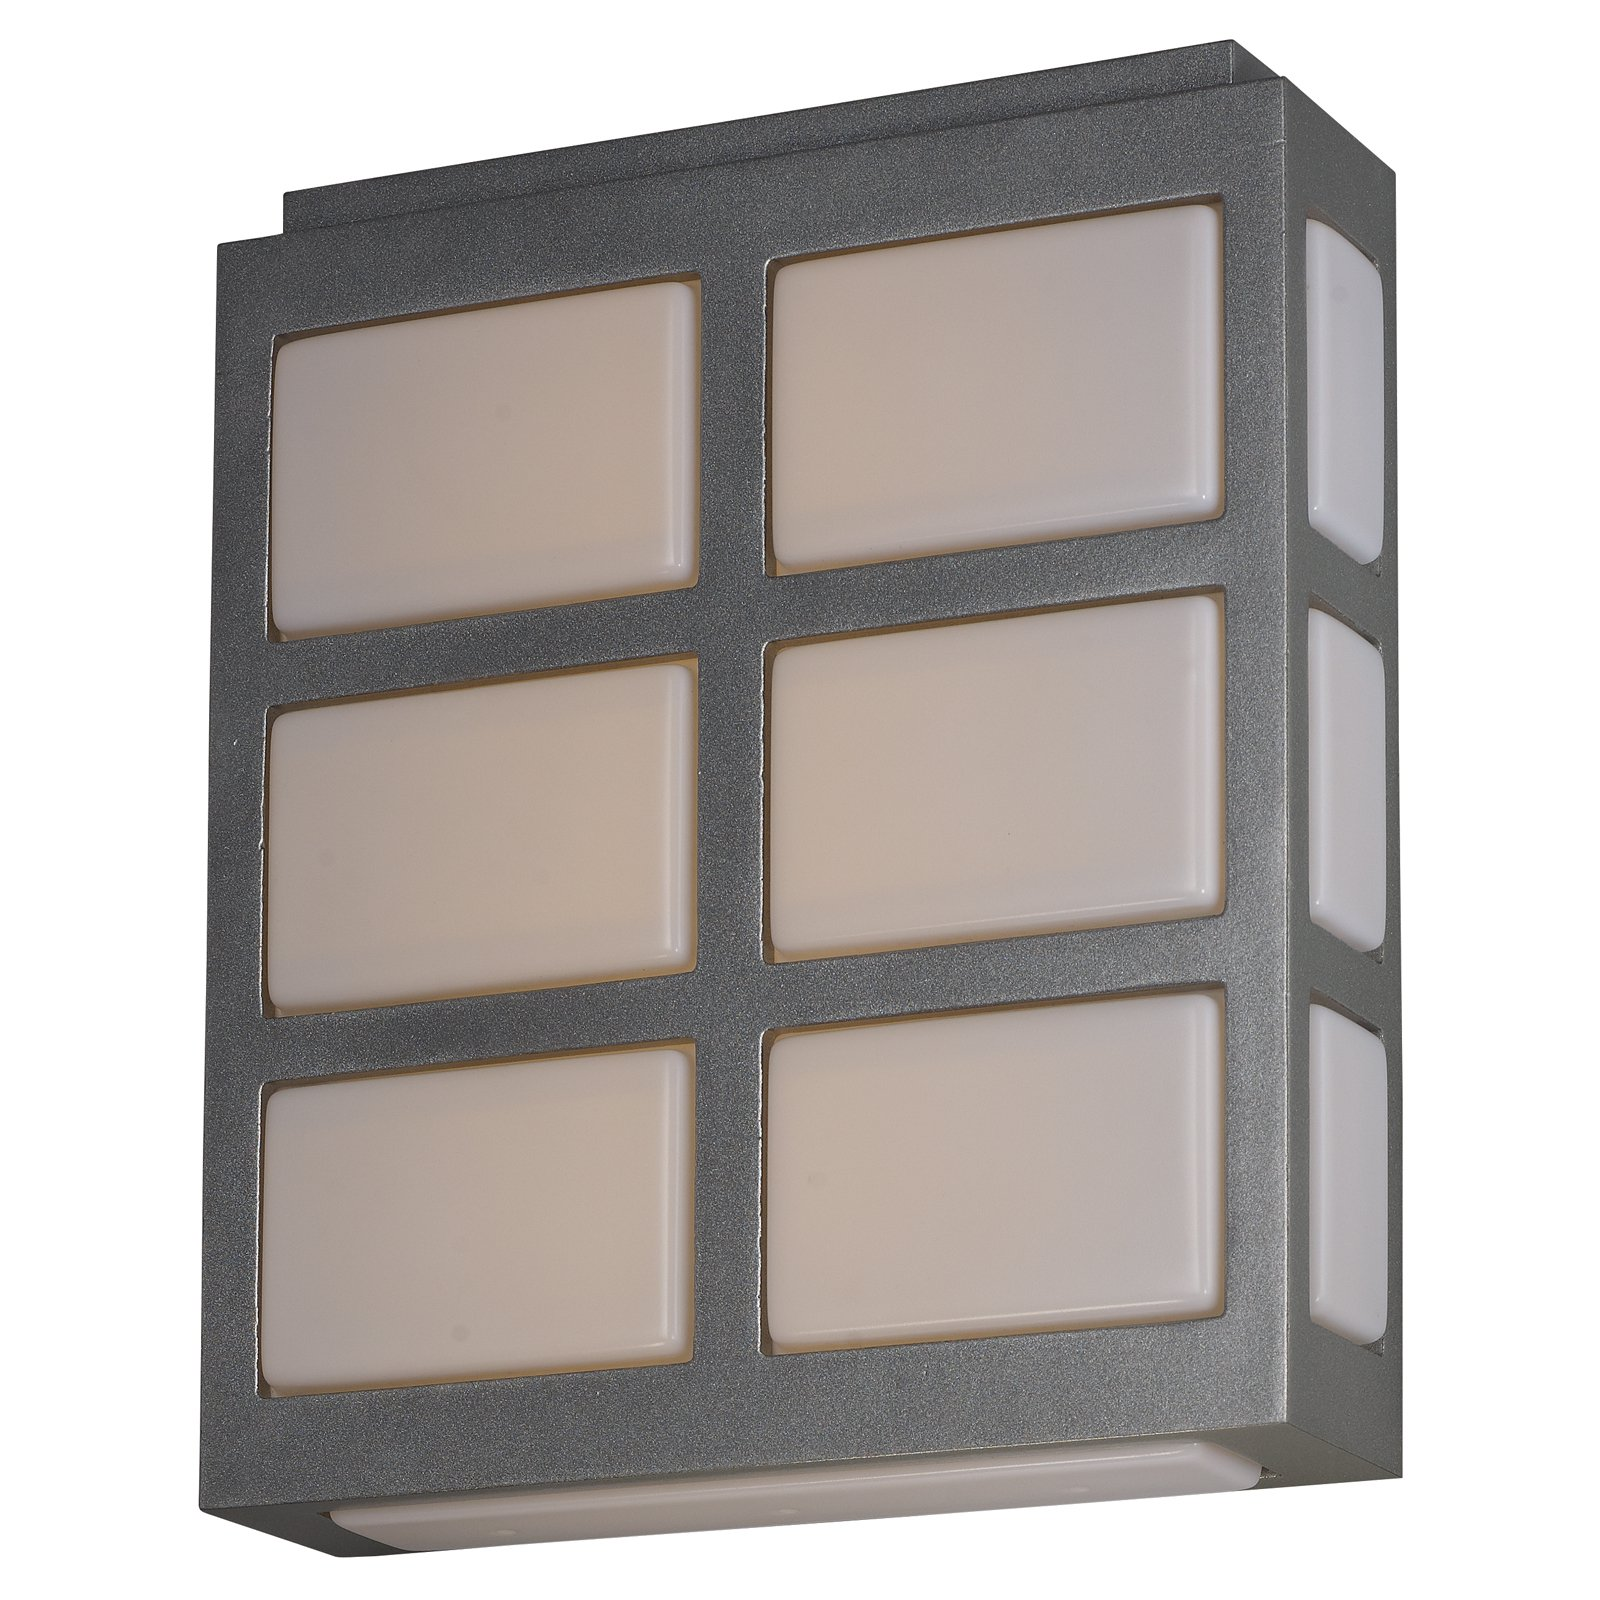 Maxim Packs LED Outdoor Wall Mount Fixture